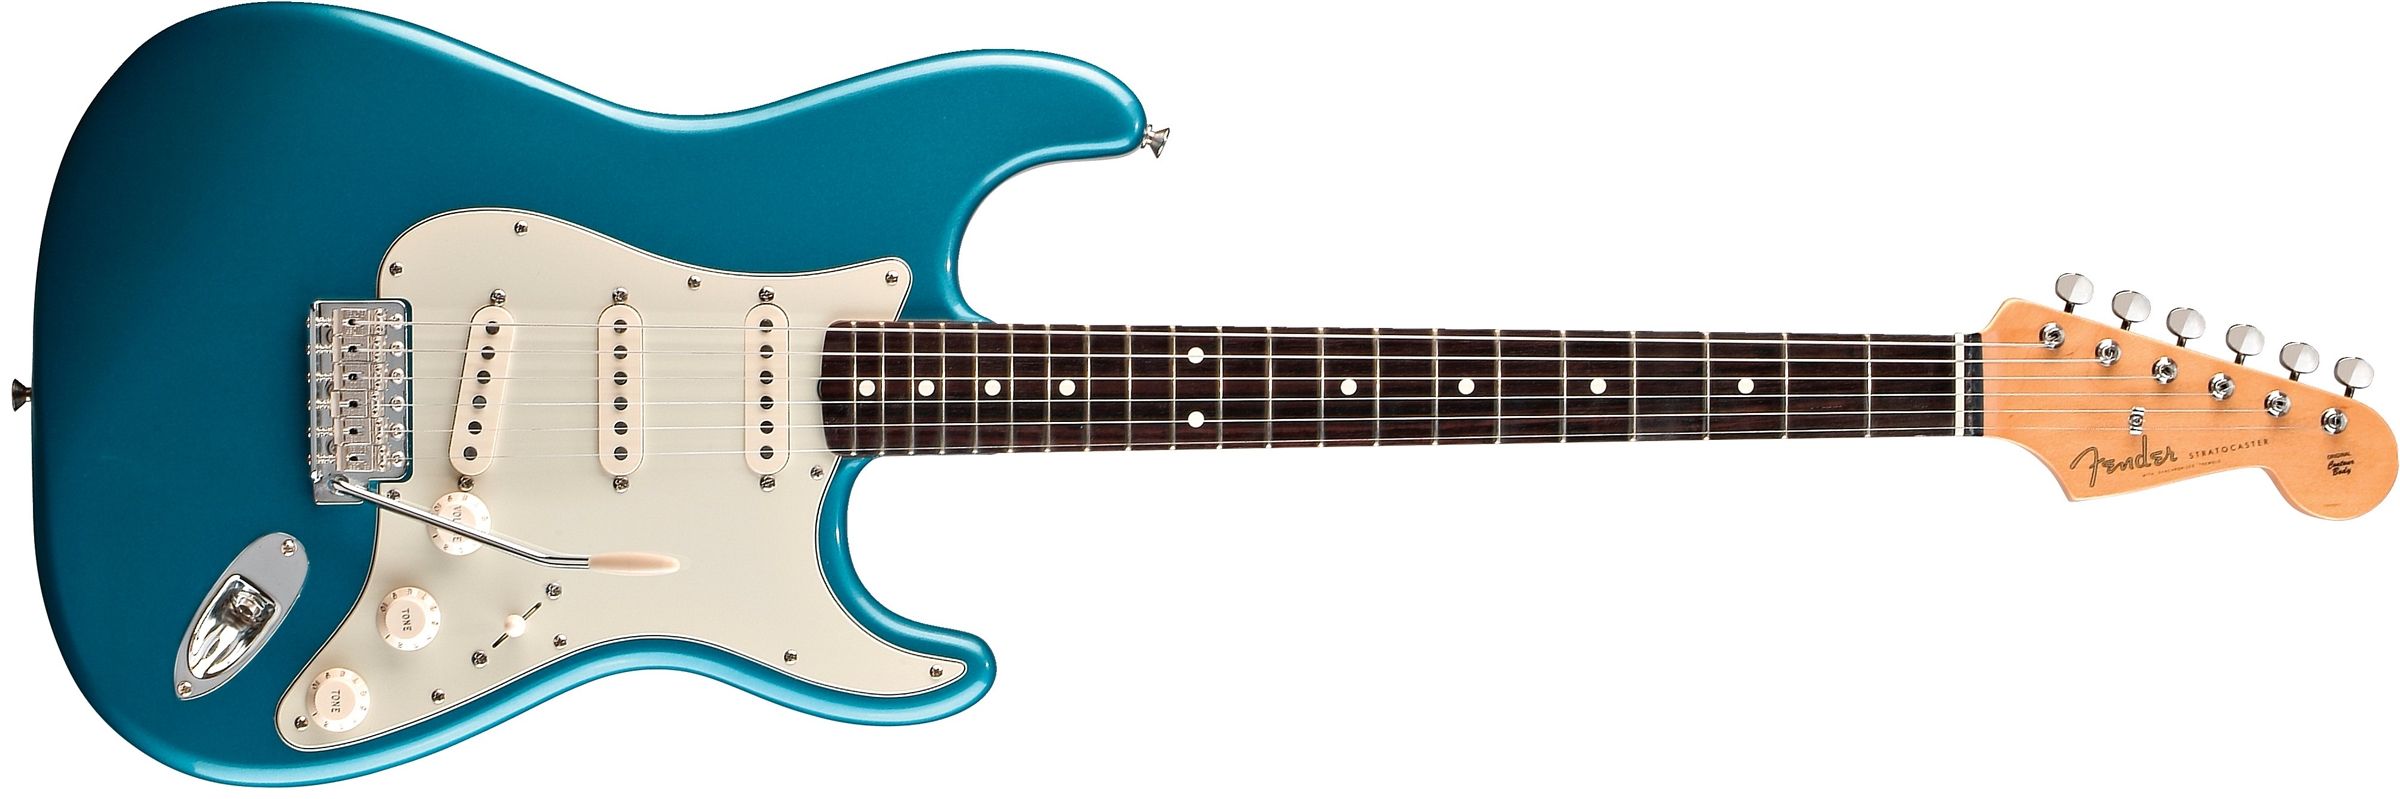 Fender Classic Series '60s Stratocaster® Lake Placid Blue Rosewood Fingerboard Electric Guitar